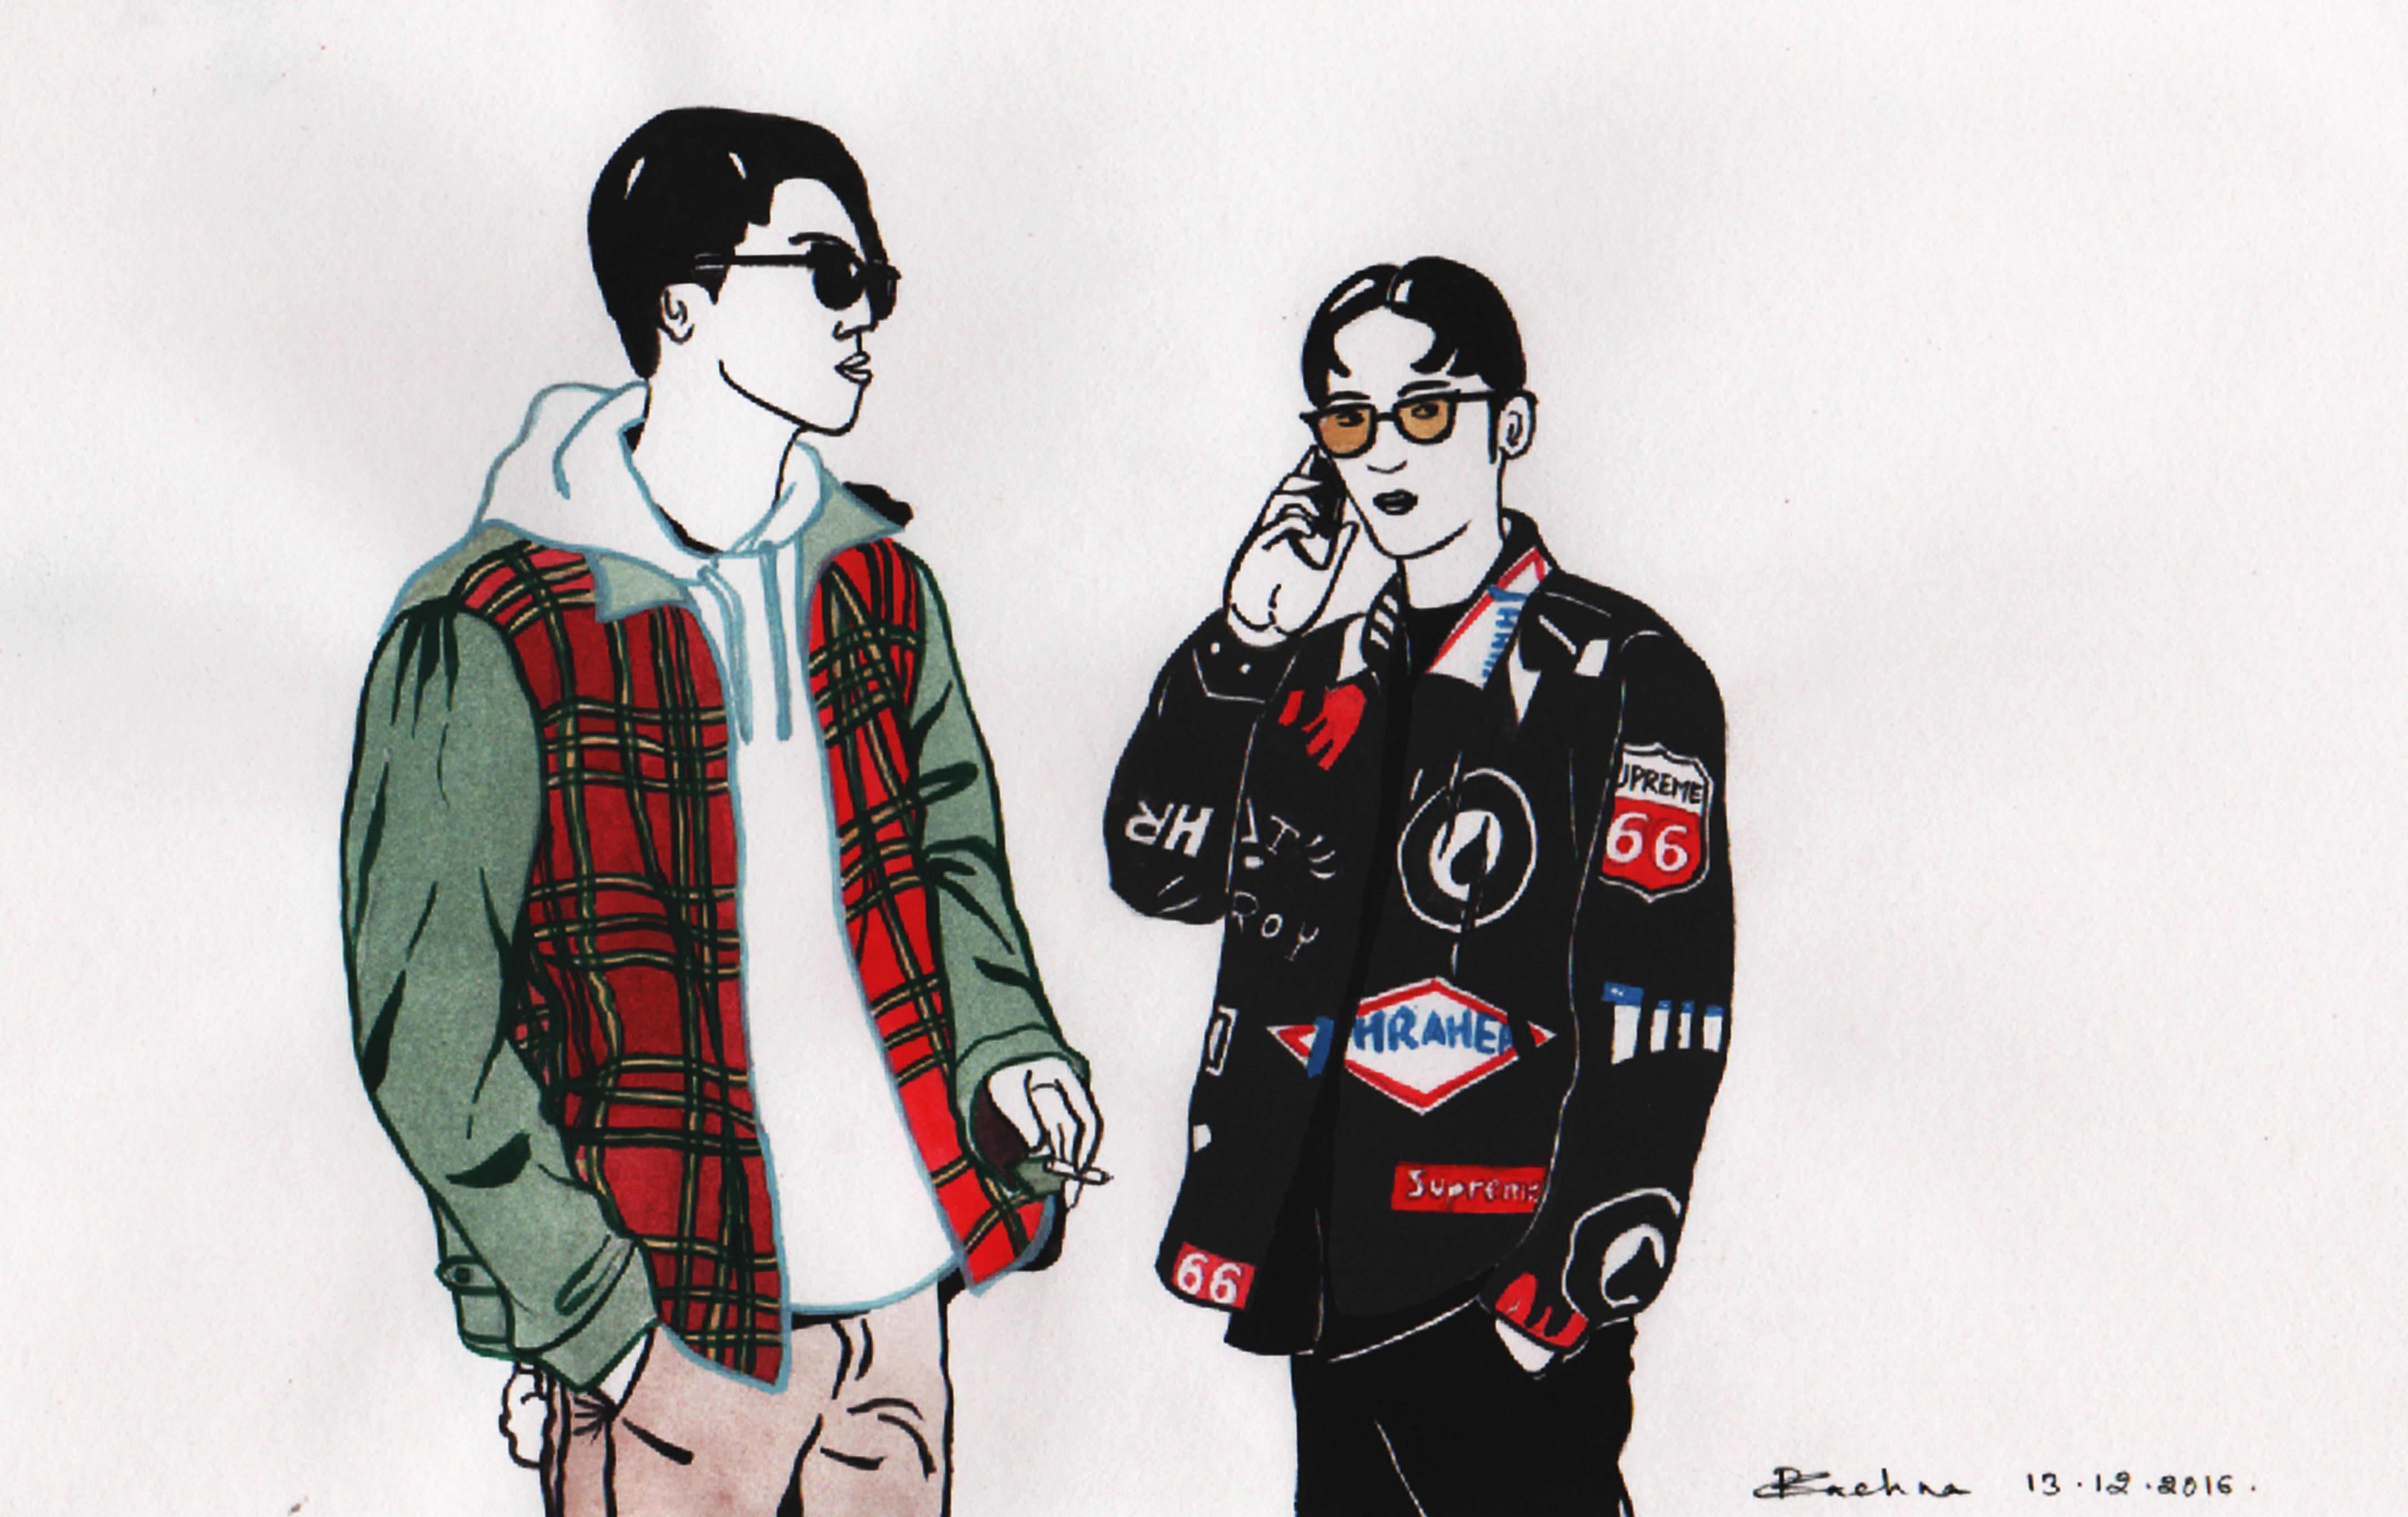 Seoul fashion week as captured by highsnobiety hand drawn and